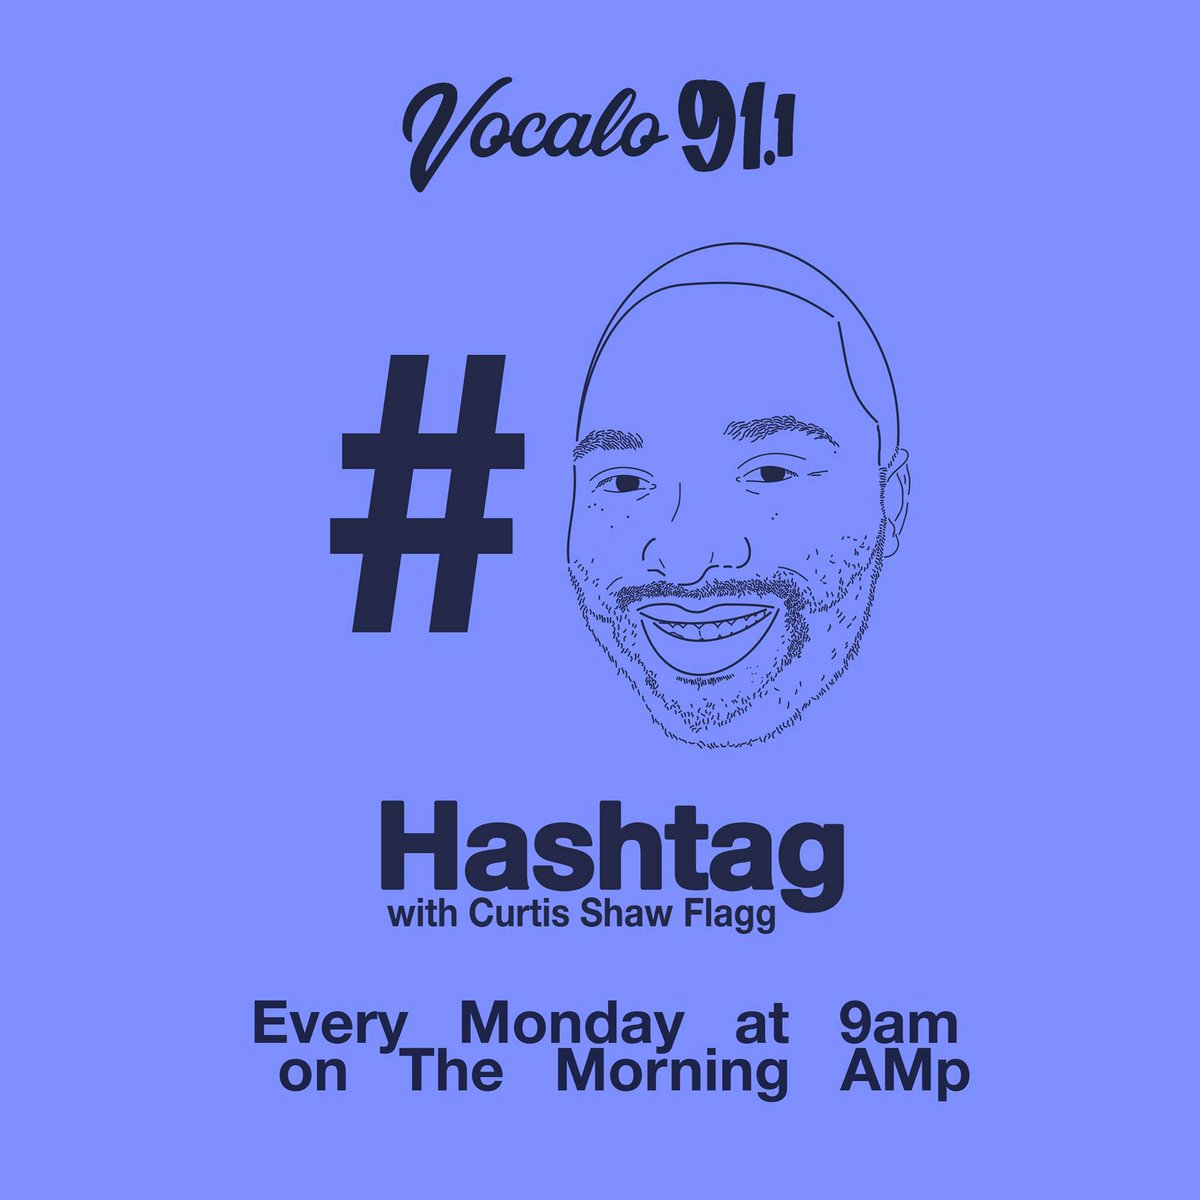 Check out @curtisshawflagg on the AMp yesterday discussing upcoming census social media trolls and more. Listen here: bit.ly/370X8uk